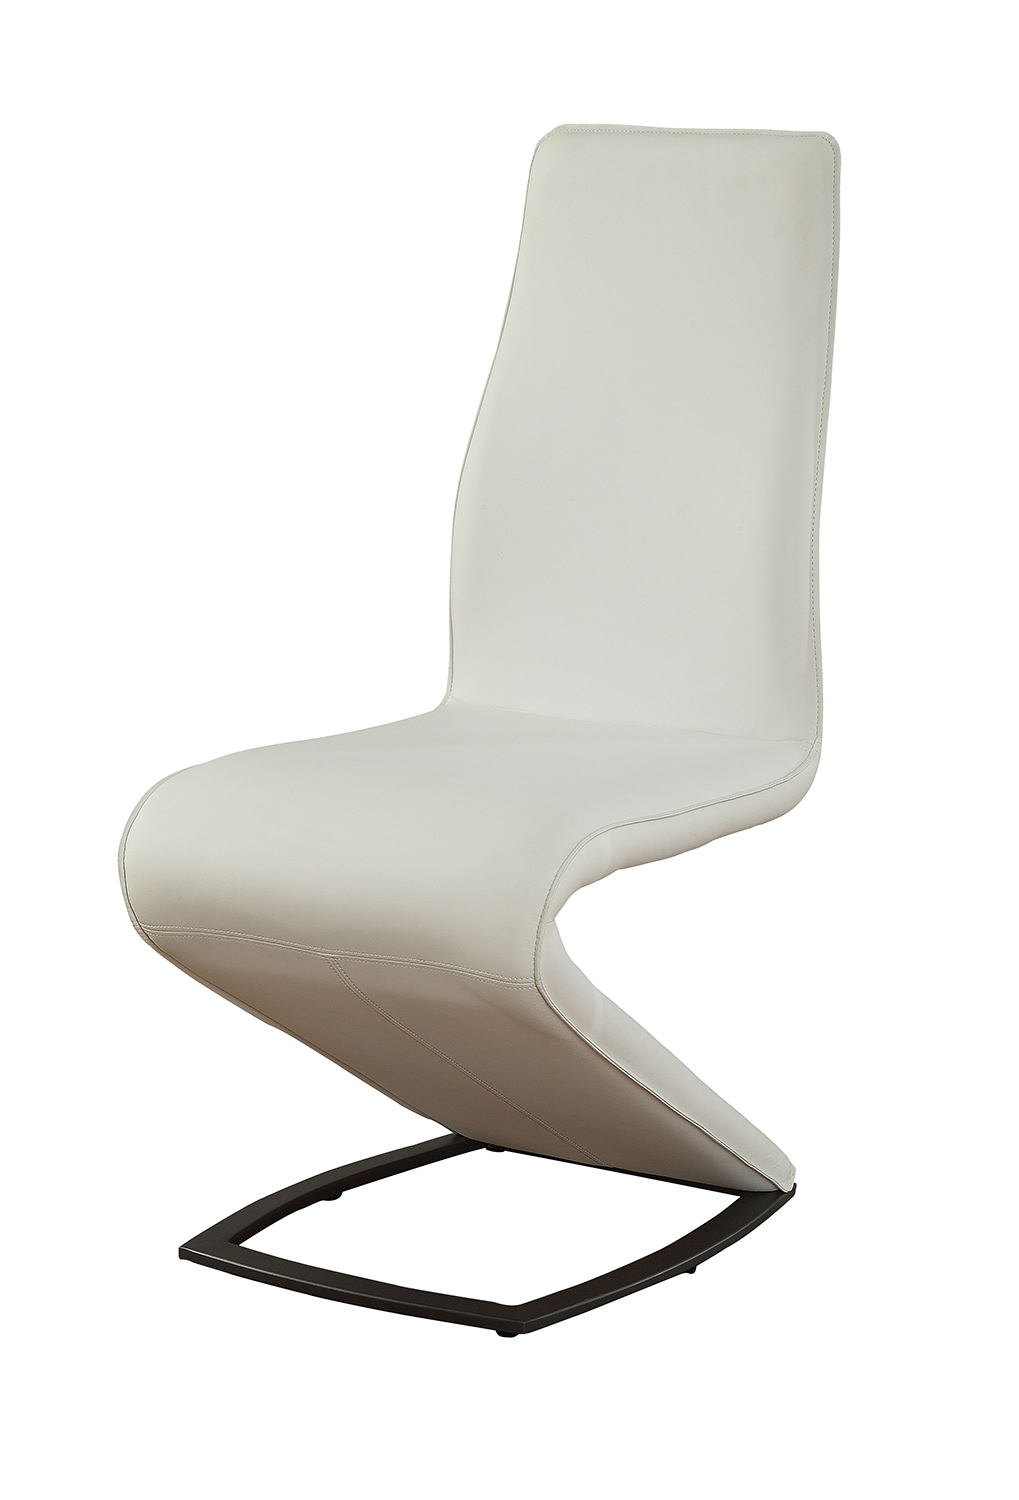 Acme Hassel Side Chair - White Vinyl/Gunmetal